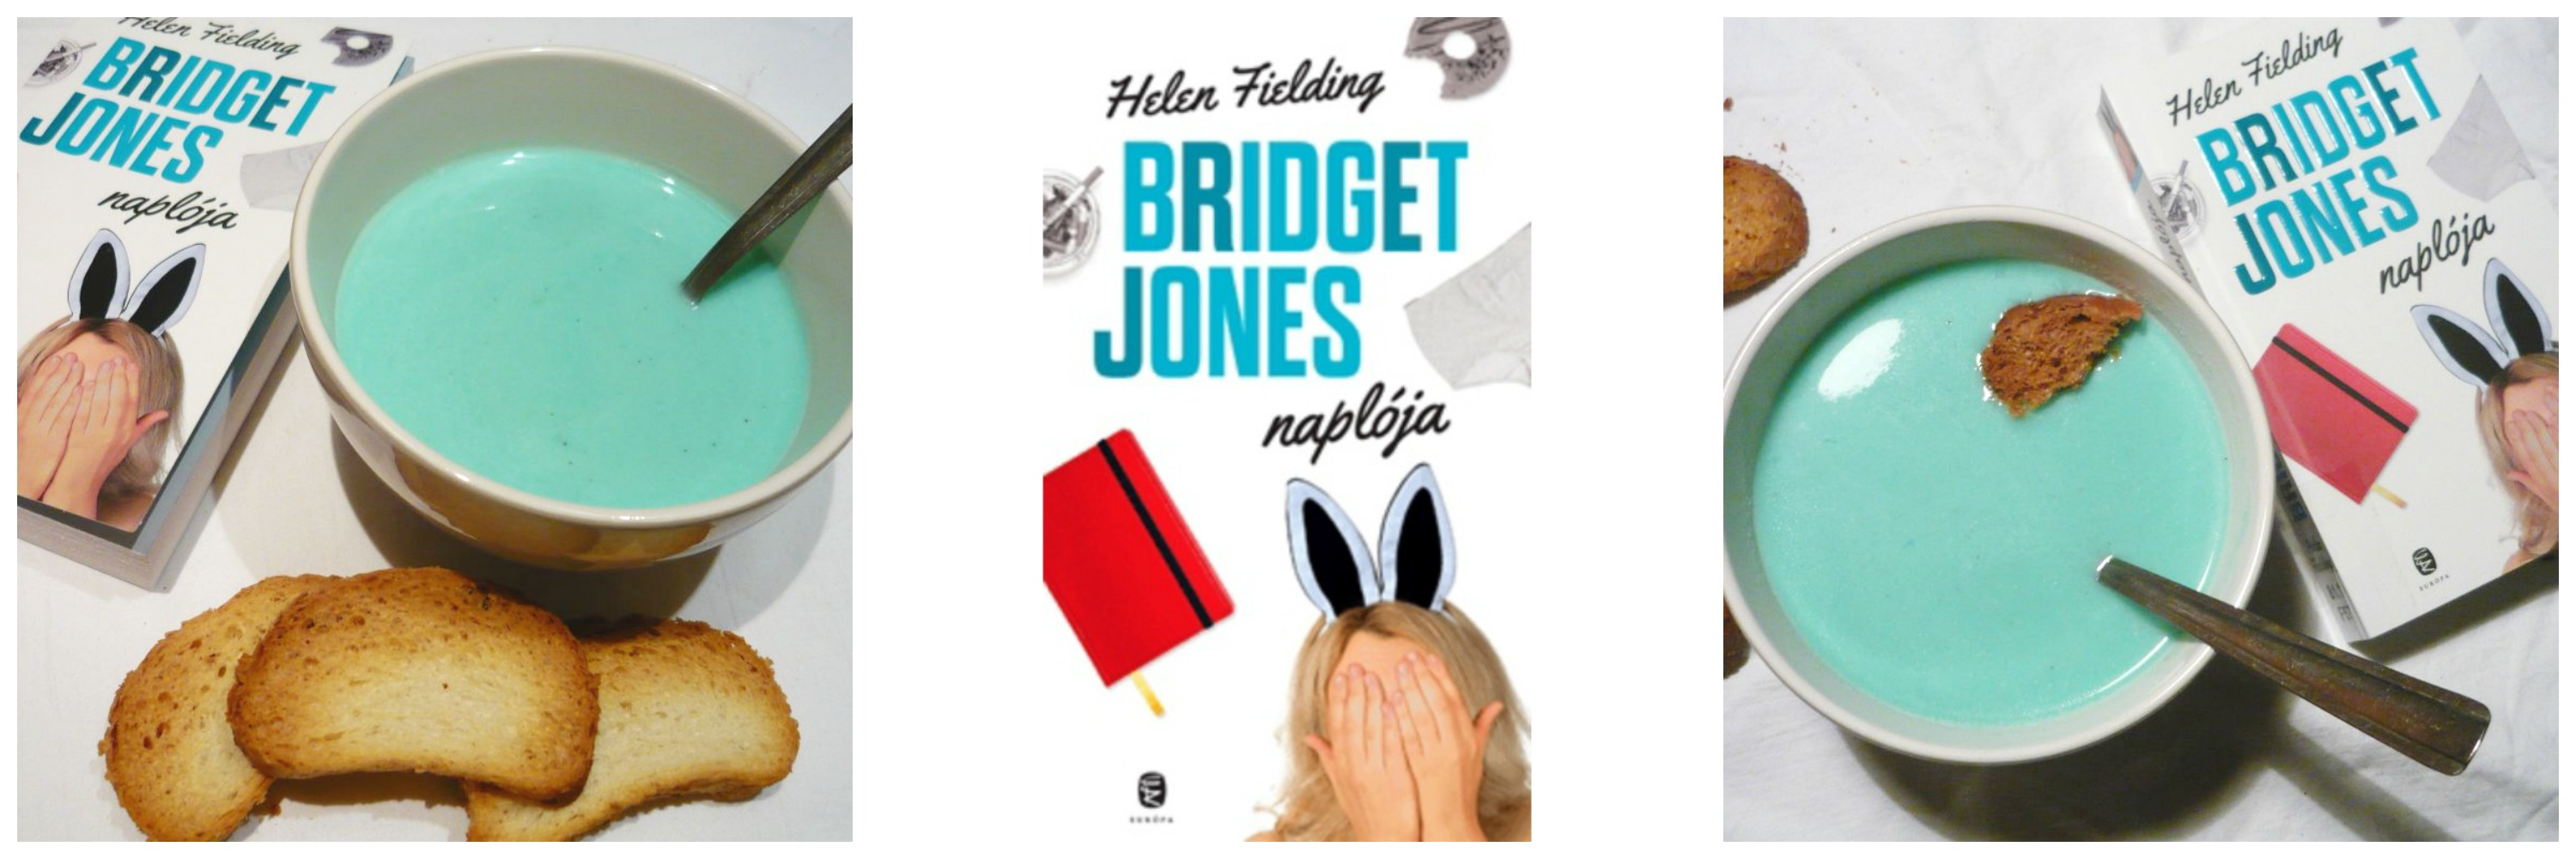 bridget_jones_naploja.jpg